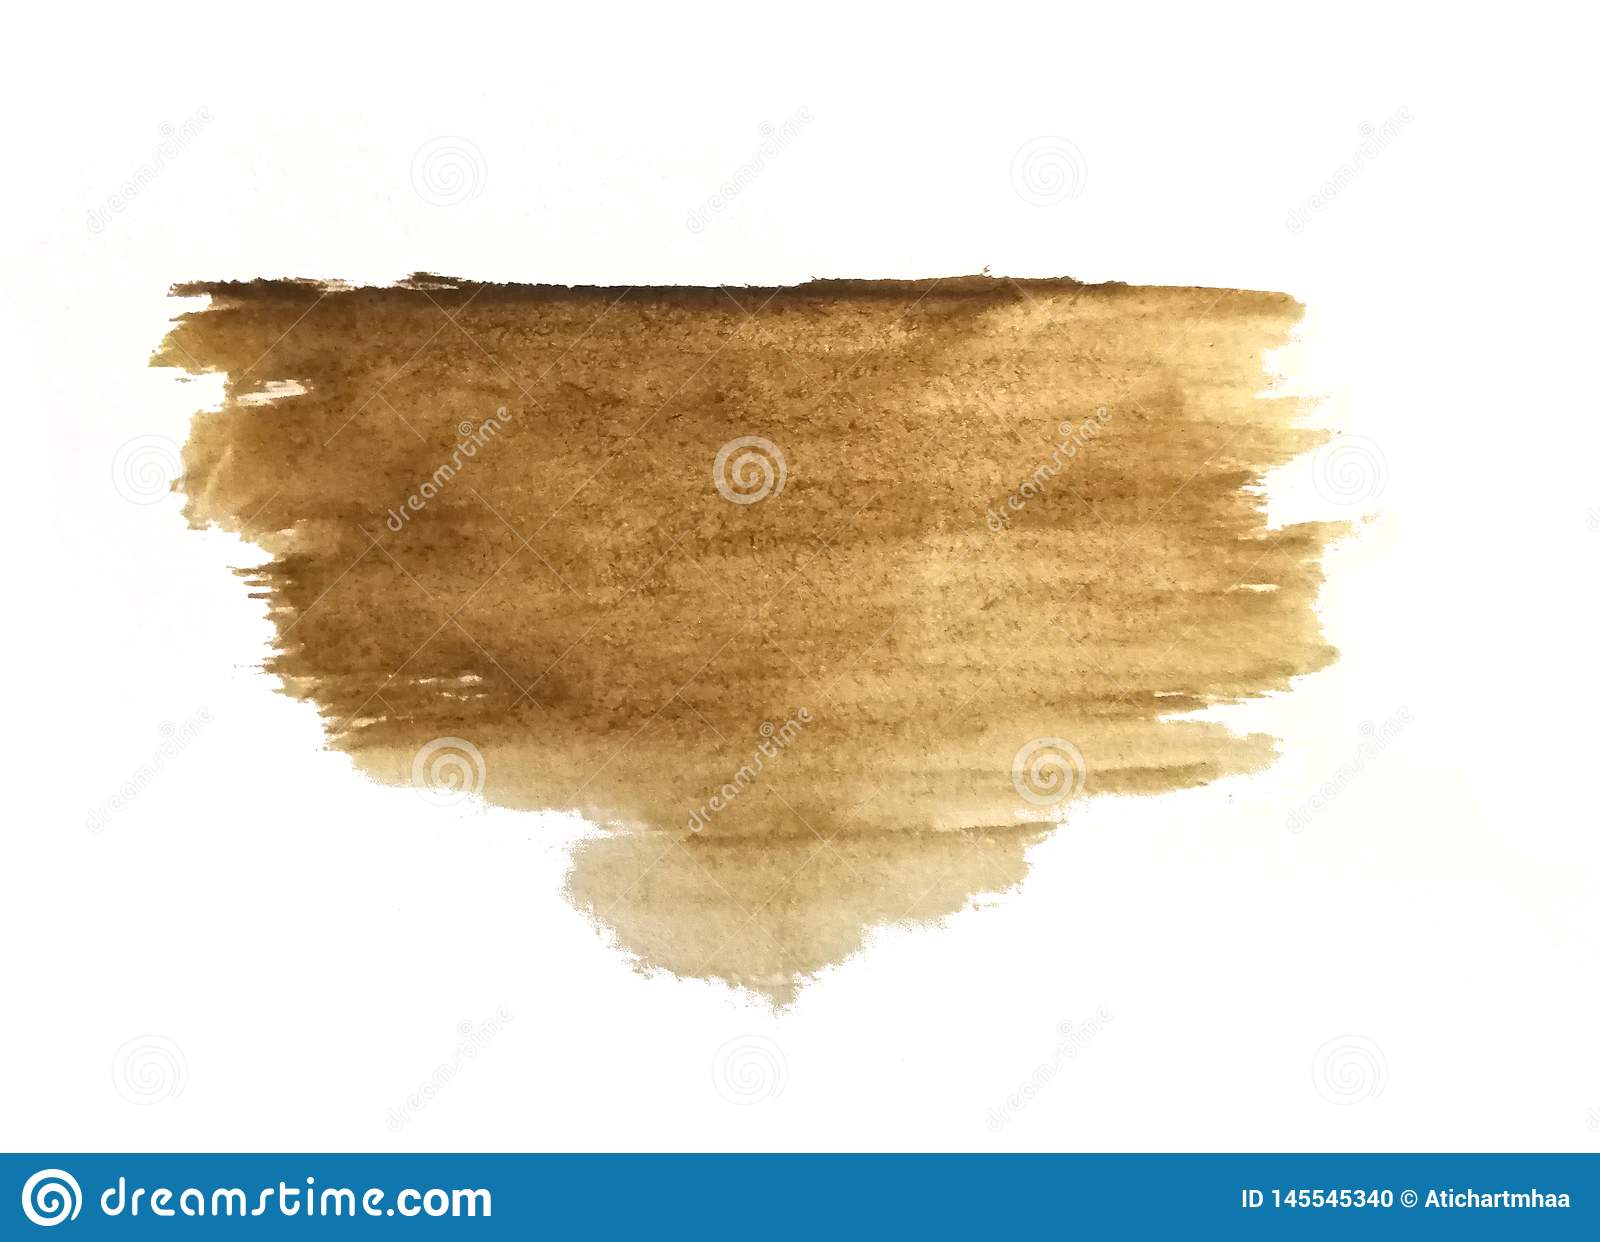 Watercolor brush hand drawn on paper brown abstract